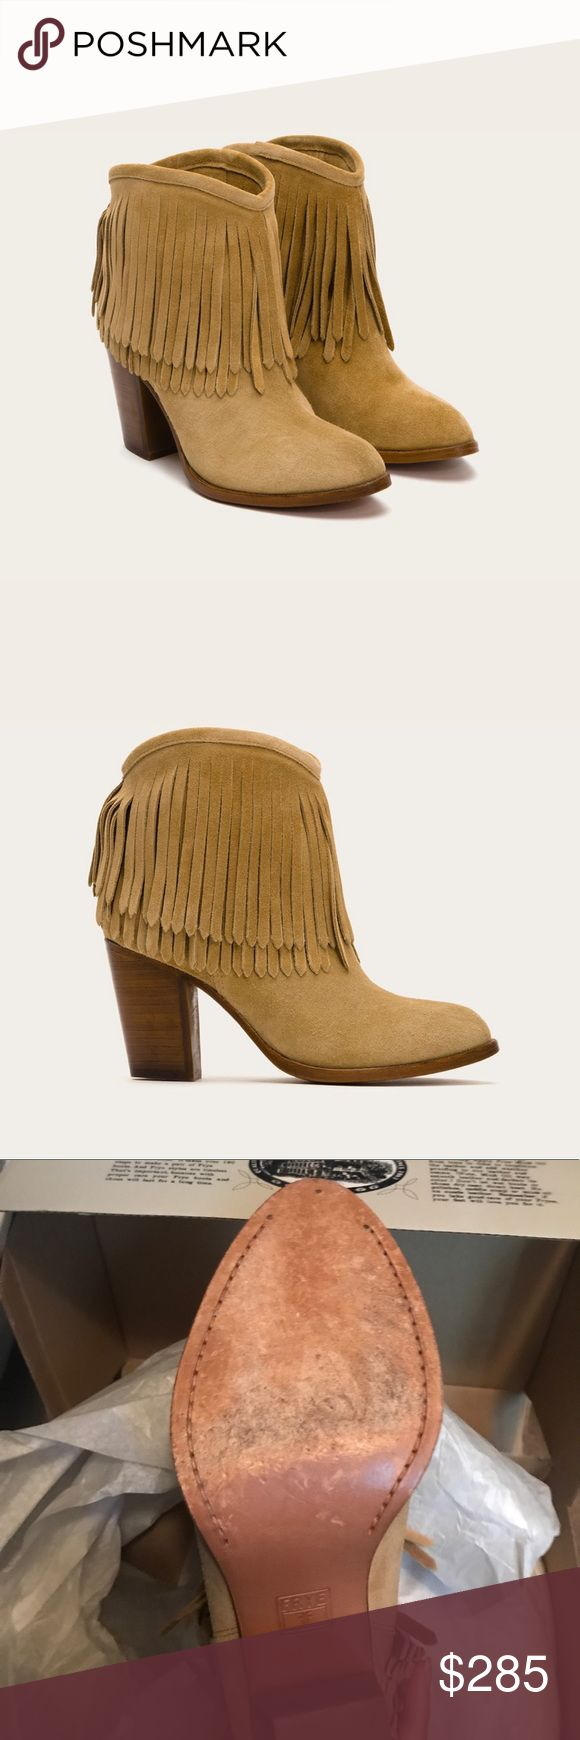 Frye Ilana Fringe Short - Size 8 Frye Ilana Fringe Short - Size 8 - Color: Biscuit. Perfect condition with box. Worn once! Only sign of wear is on the soles as shown in 3rd picture. Frye Shoes Ankle Boots & Booties